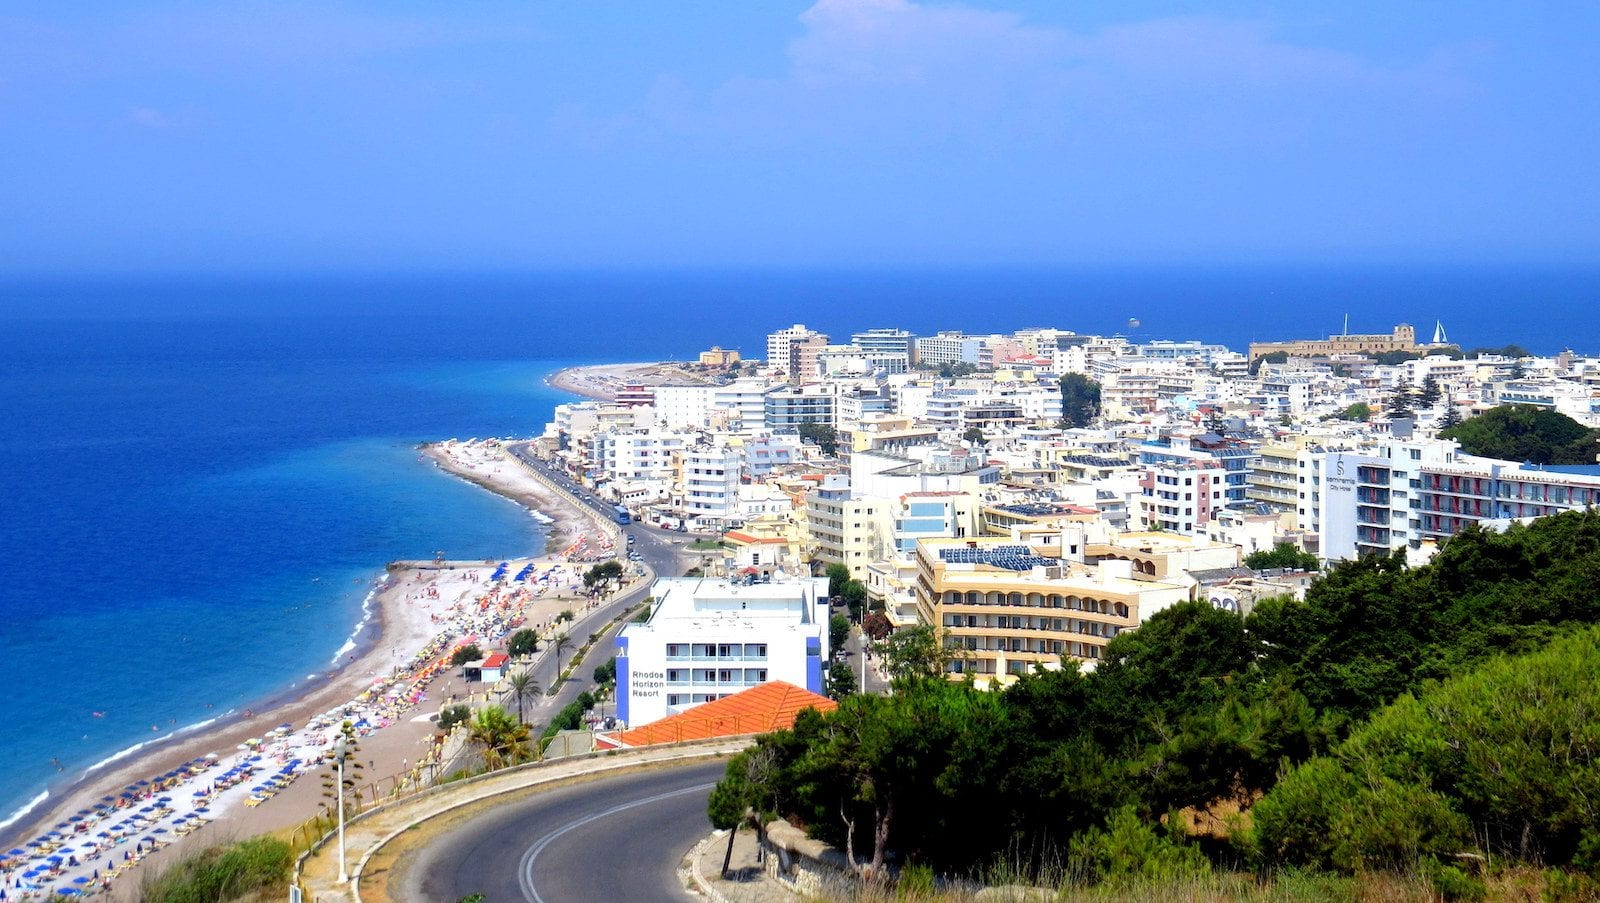 The New Town of Rhodes, Greece.